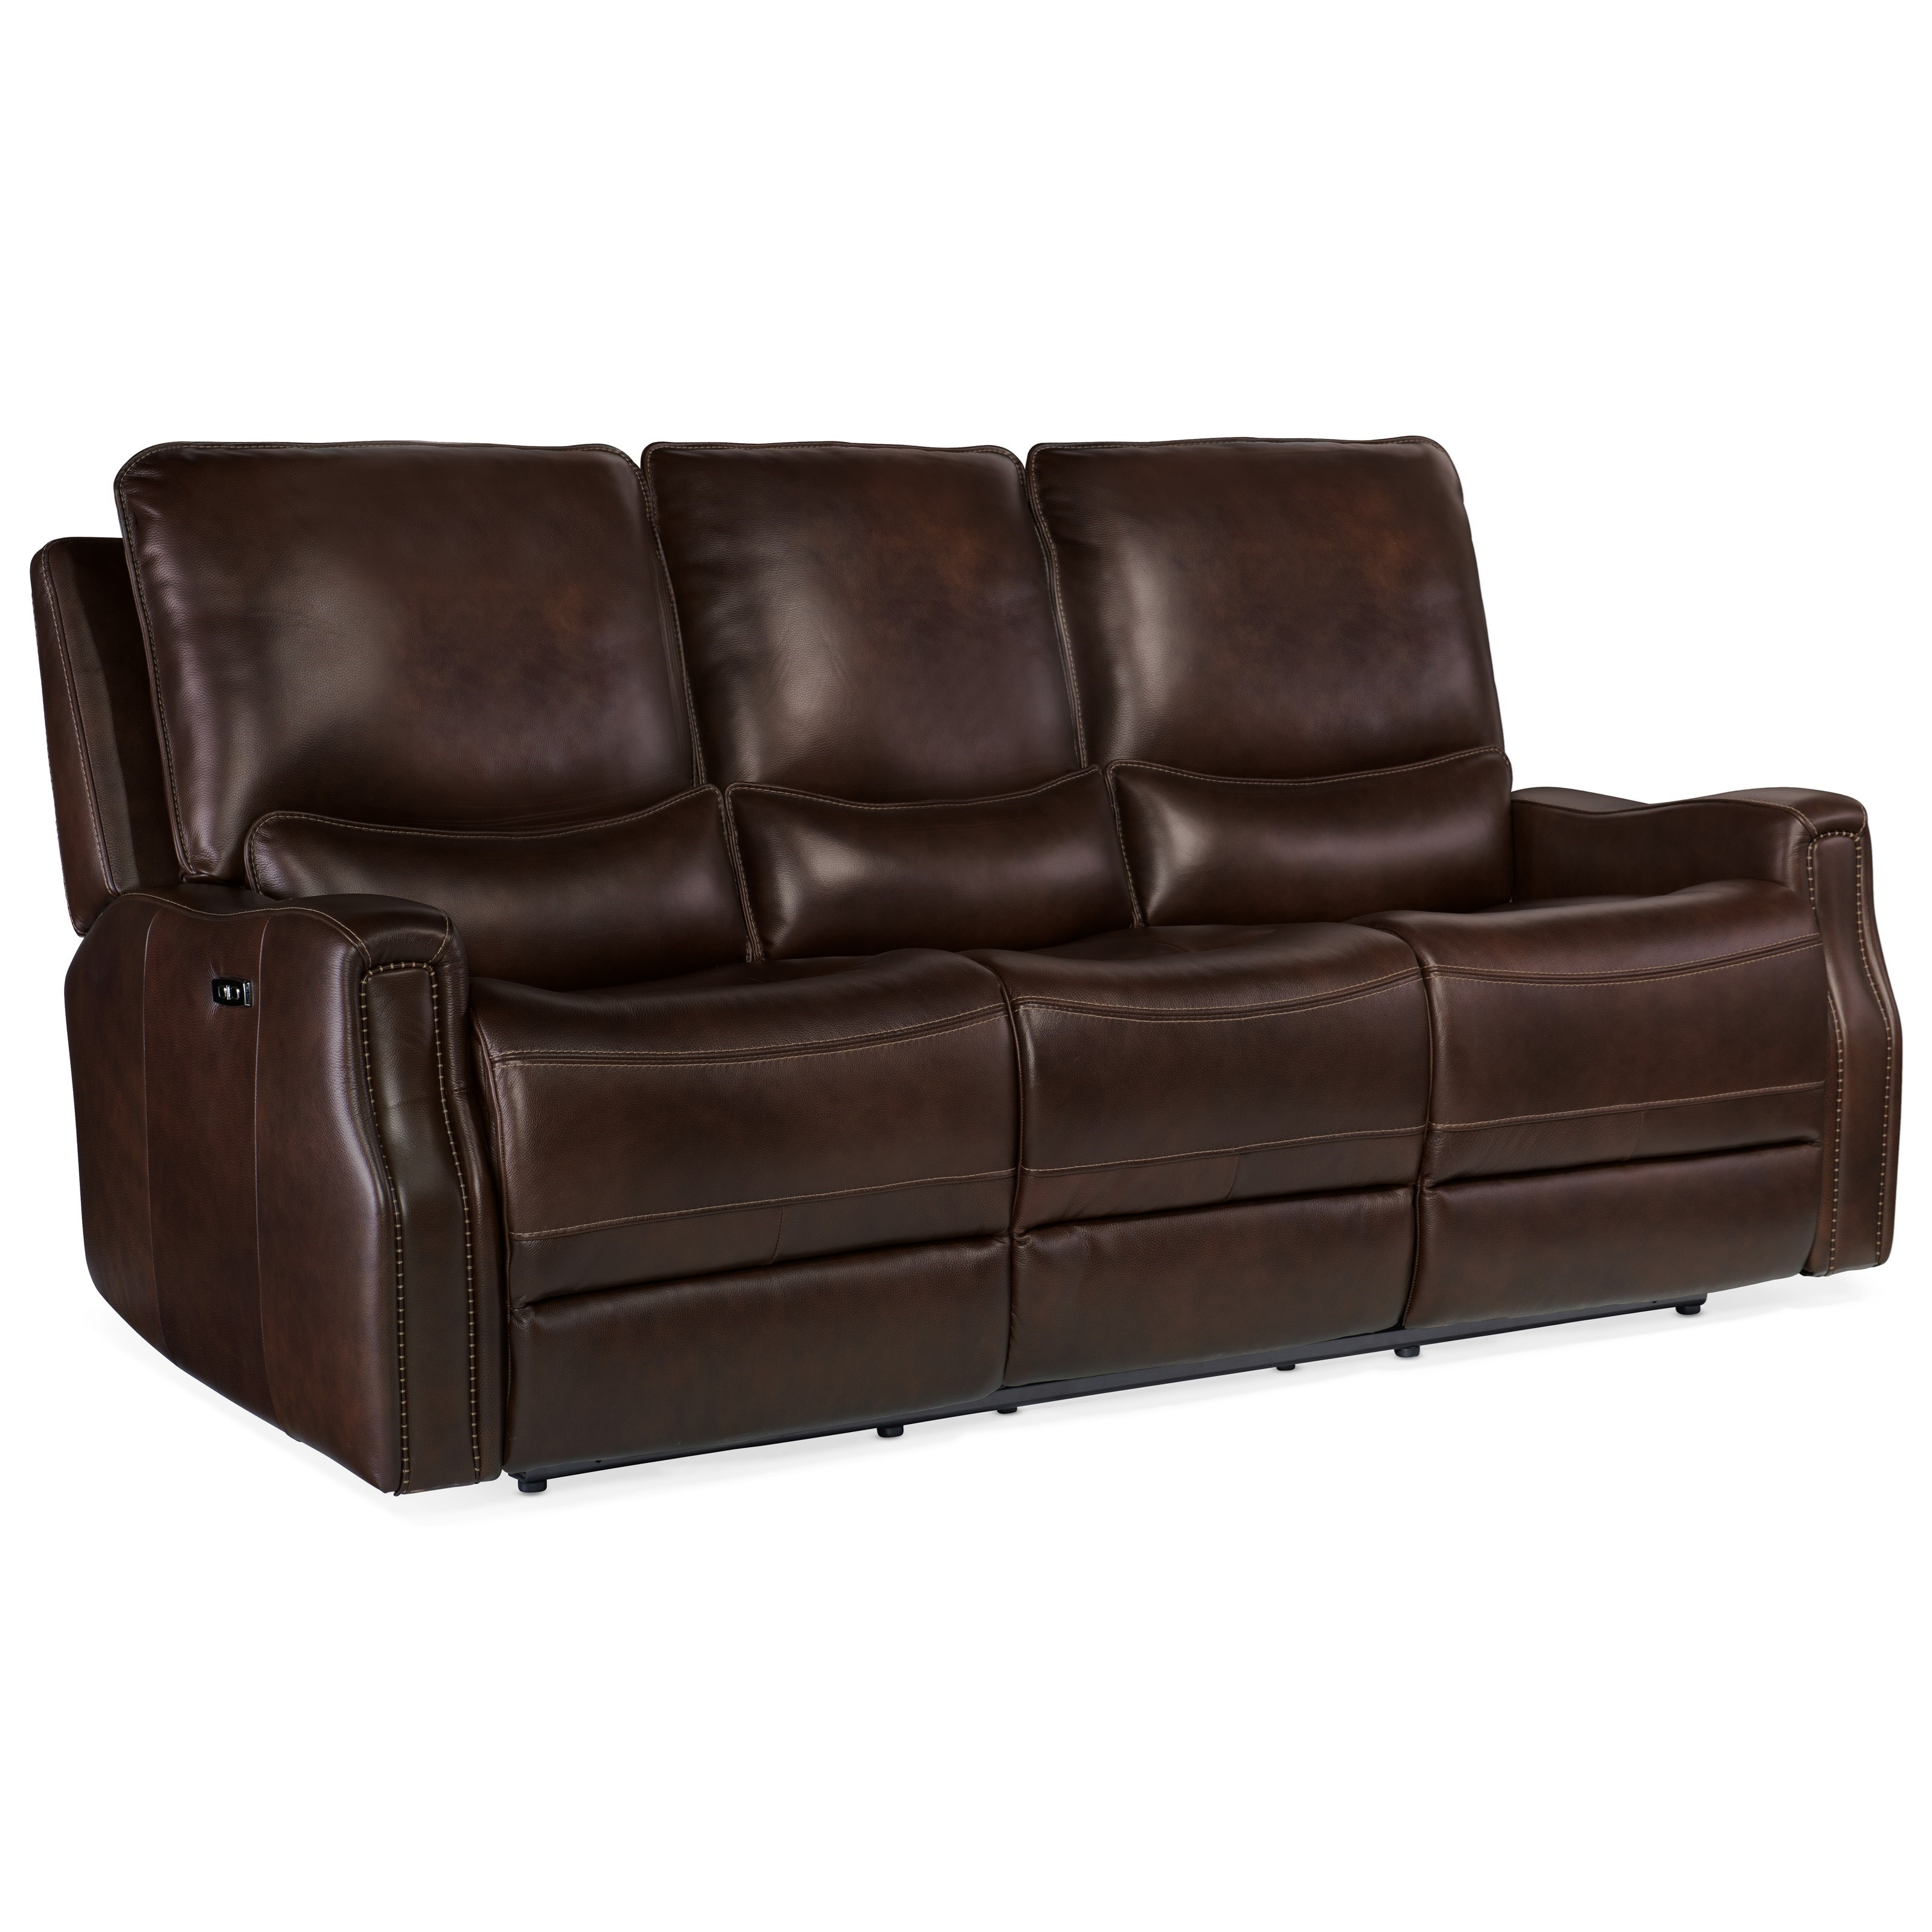 Gage Power Recline Sofa by Hooker Furniture at Baer's Furniture